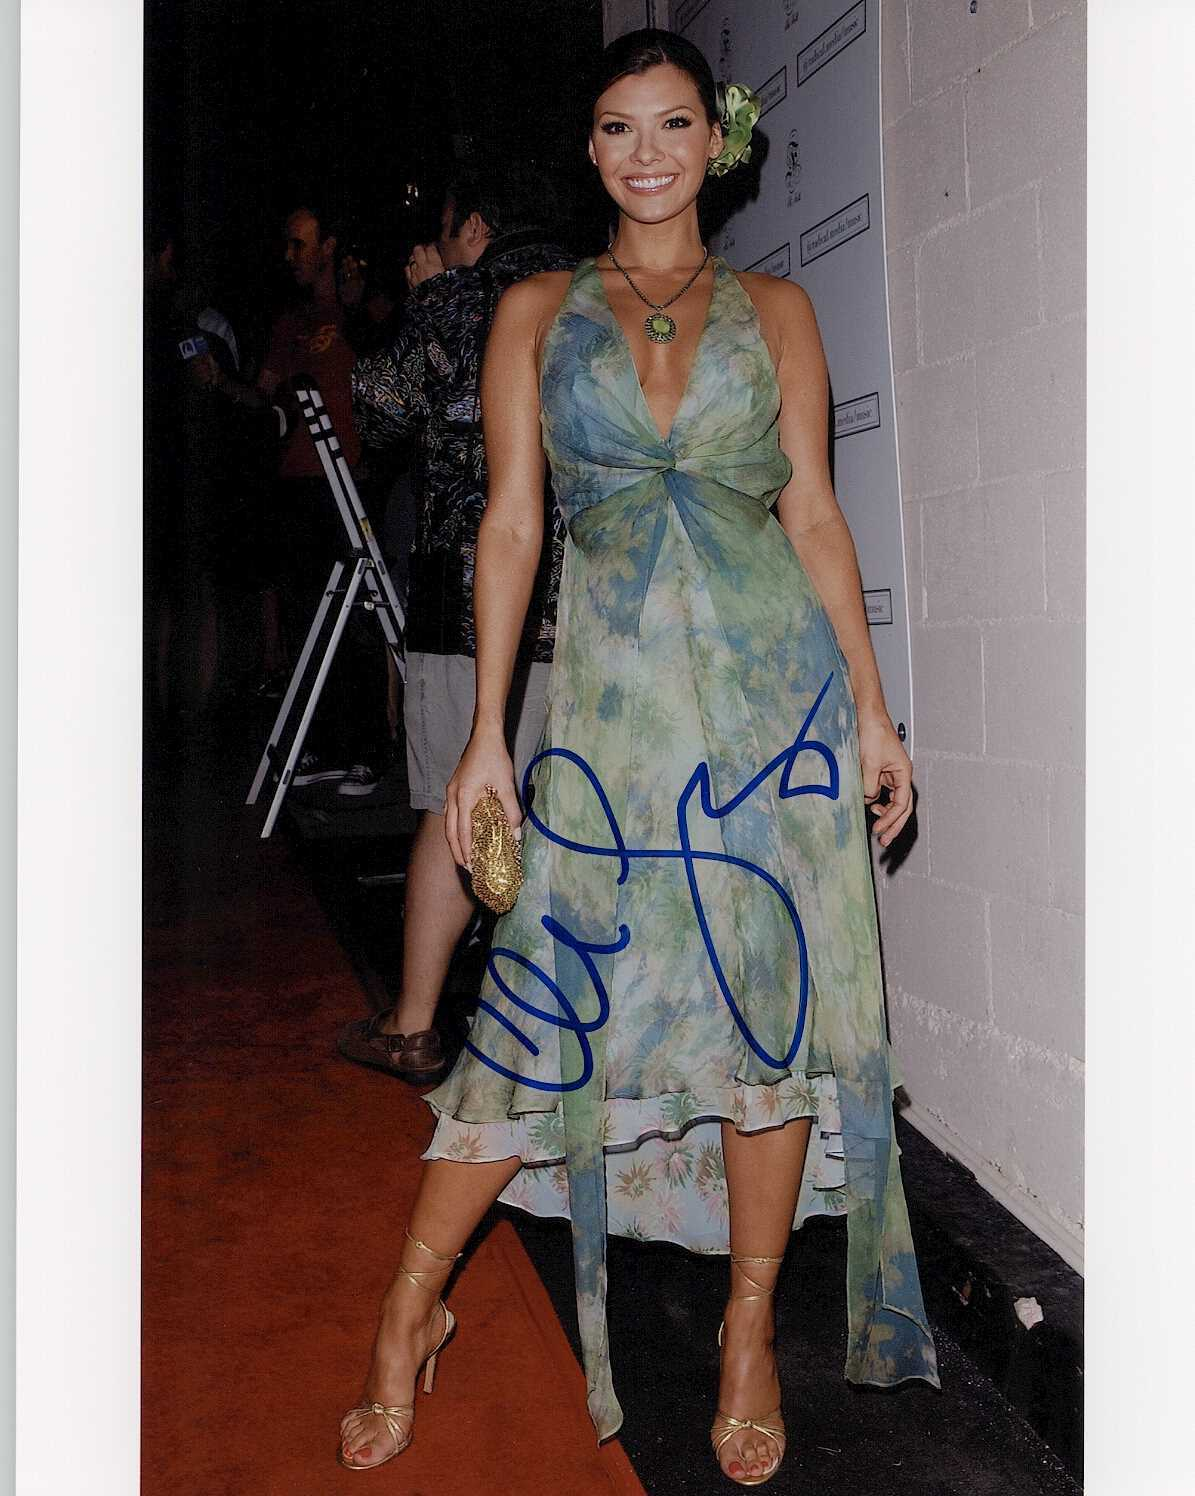 Primary image for Ali Landry Signed Autographed Glossy 8x10 Photo